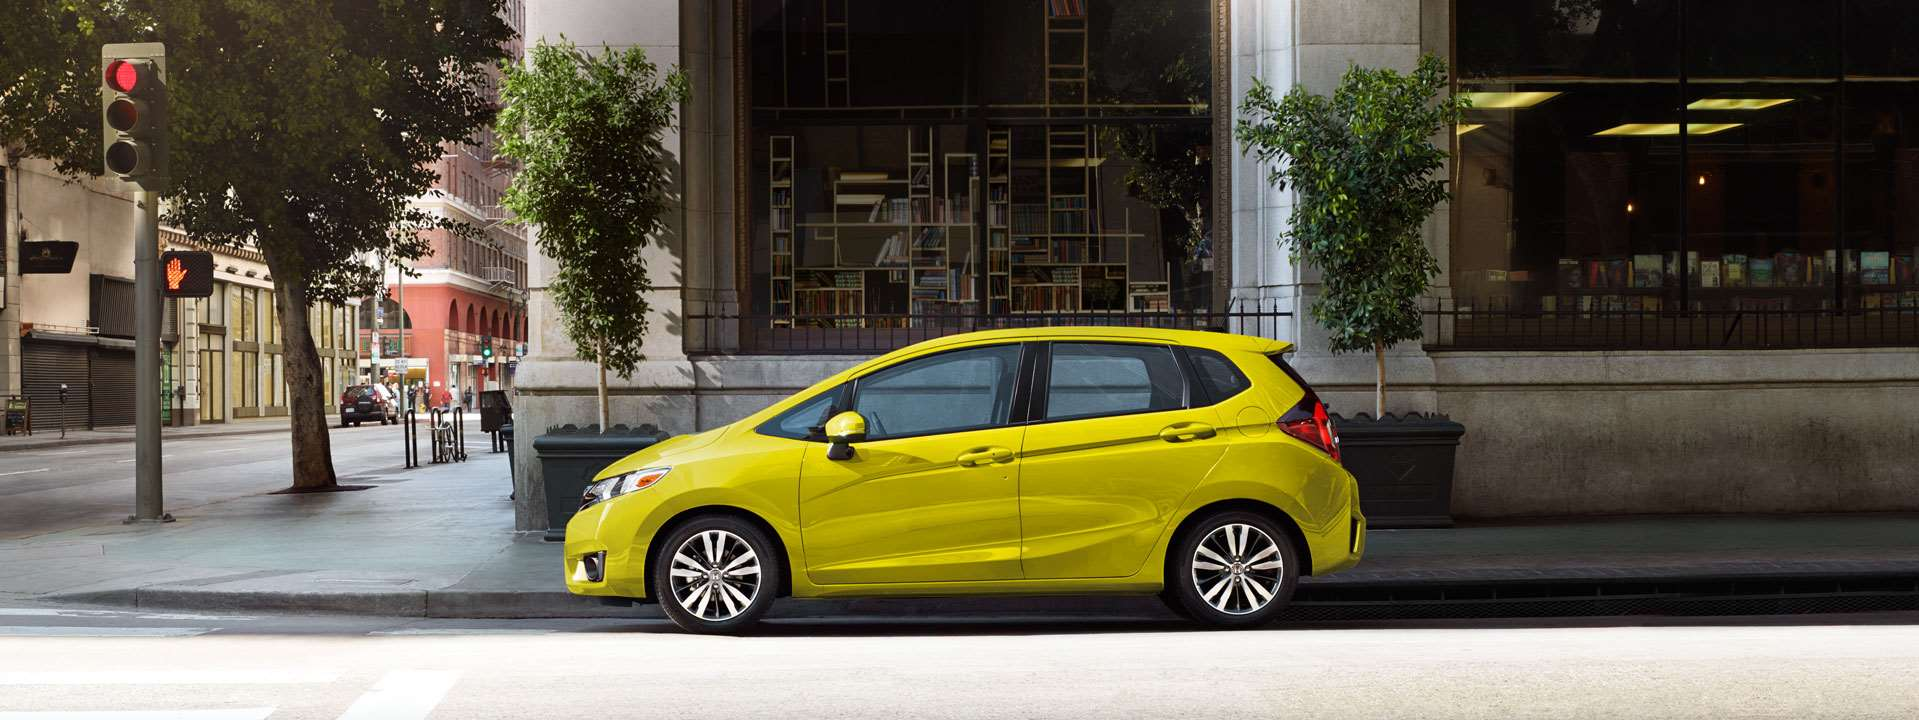 Honda Fit Yellow